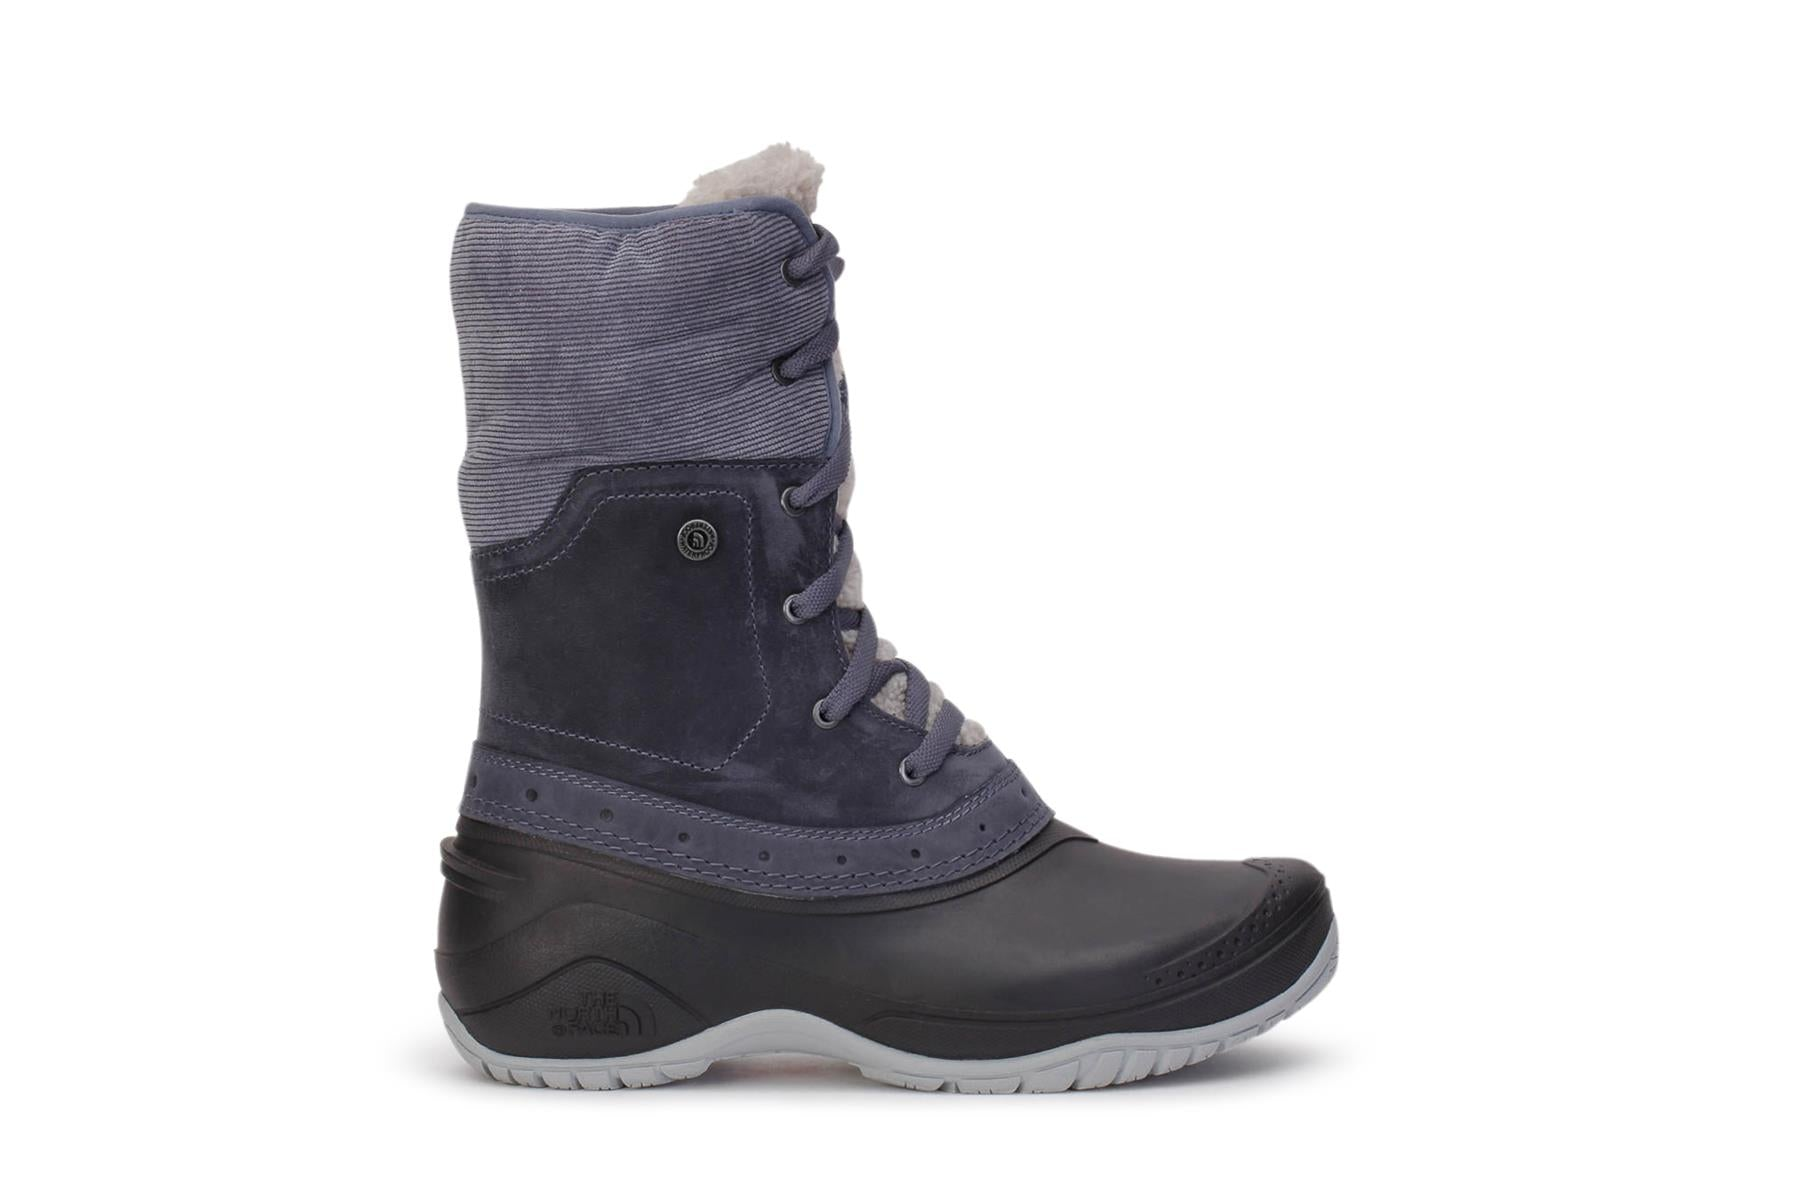 the-north-face-womens-shellista-roll-down-wp-boots-grisaille-grey-weathered-black-main